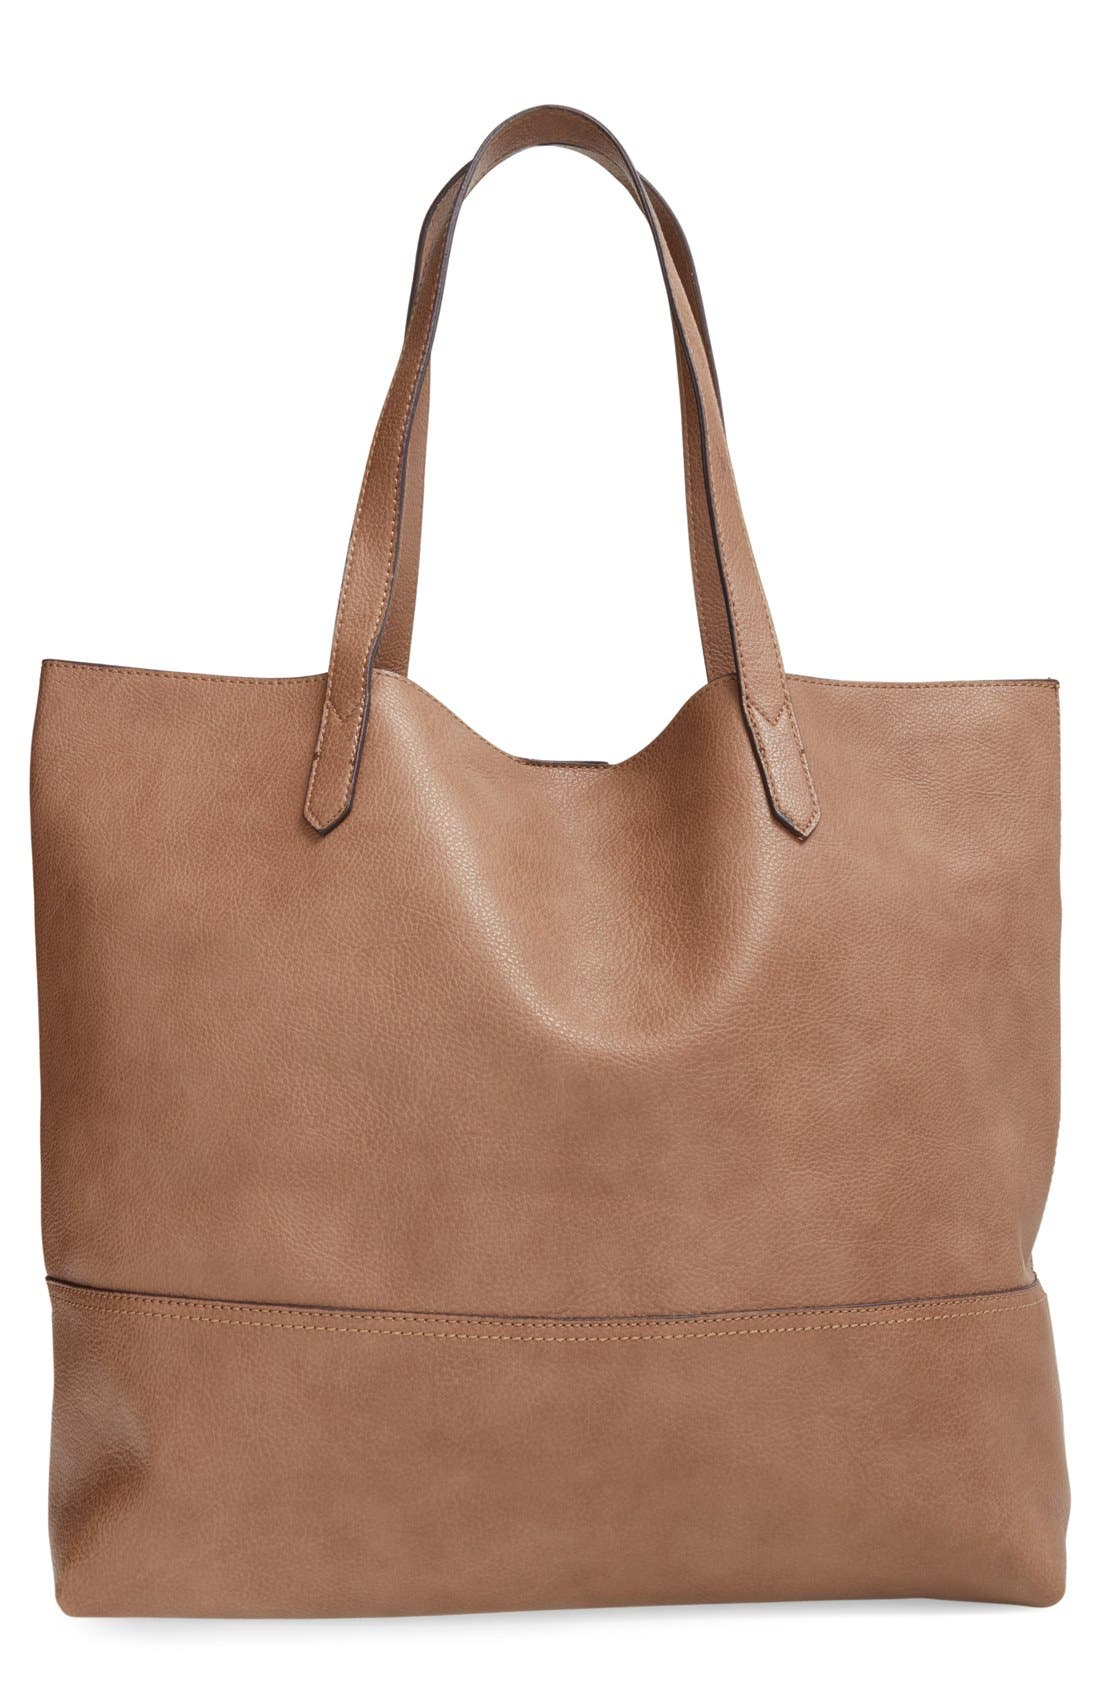 Alternate Image 1 Selected - Street Level 'Large' Faux Leather Shopper